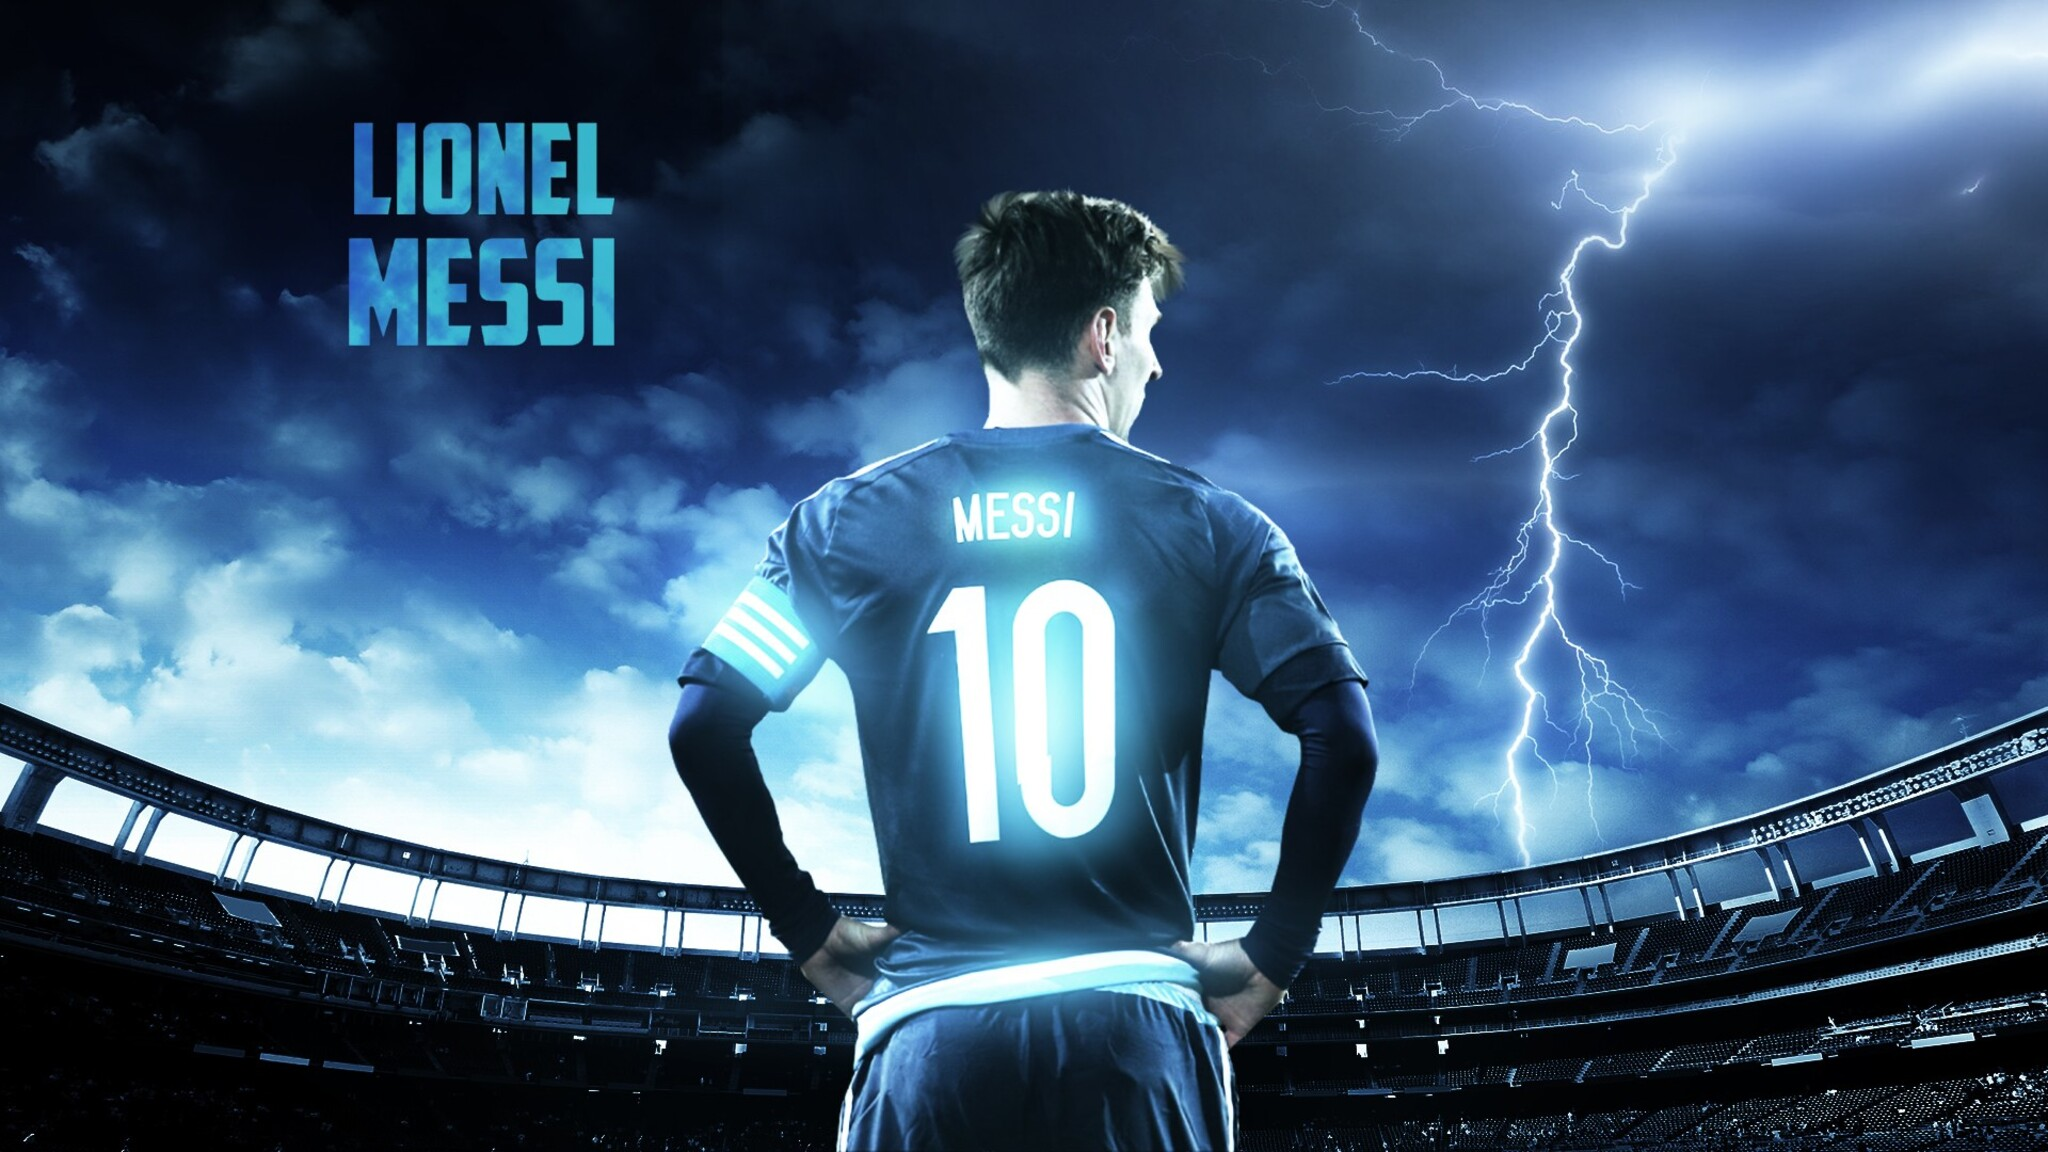 2048x1152 Leo Messi 2048x1152 Resolution Hd 4k Wallpapers Images